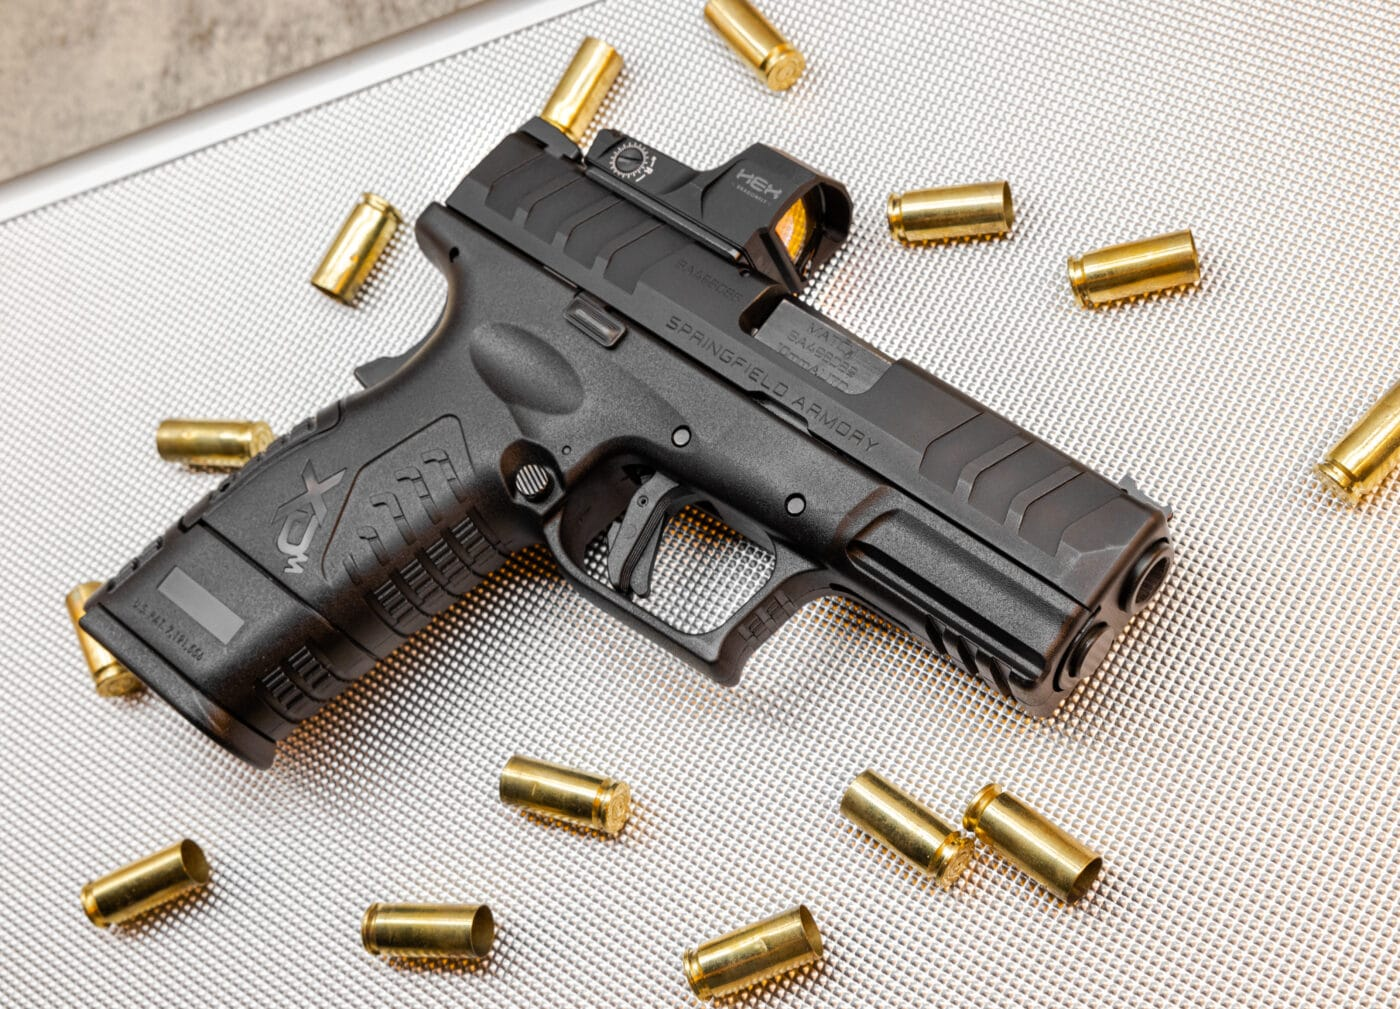 Springfield Armory XD-M Elite 3.8 Compact OSP in 10mm